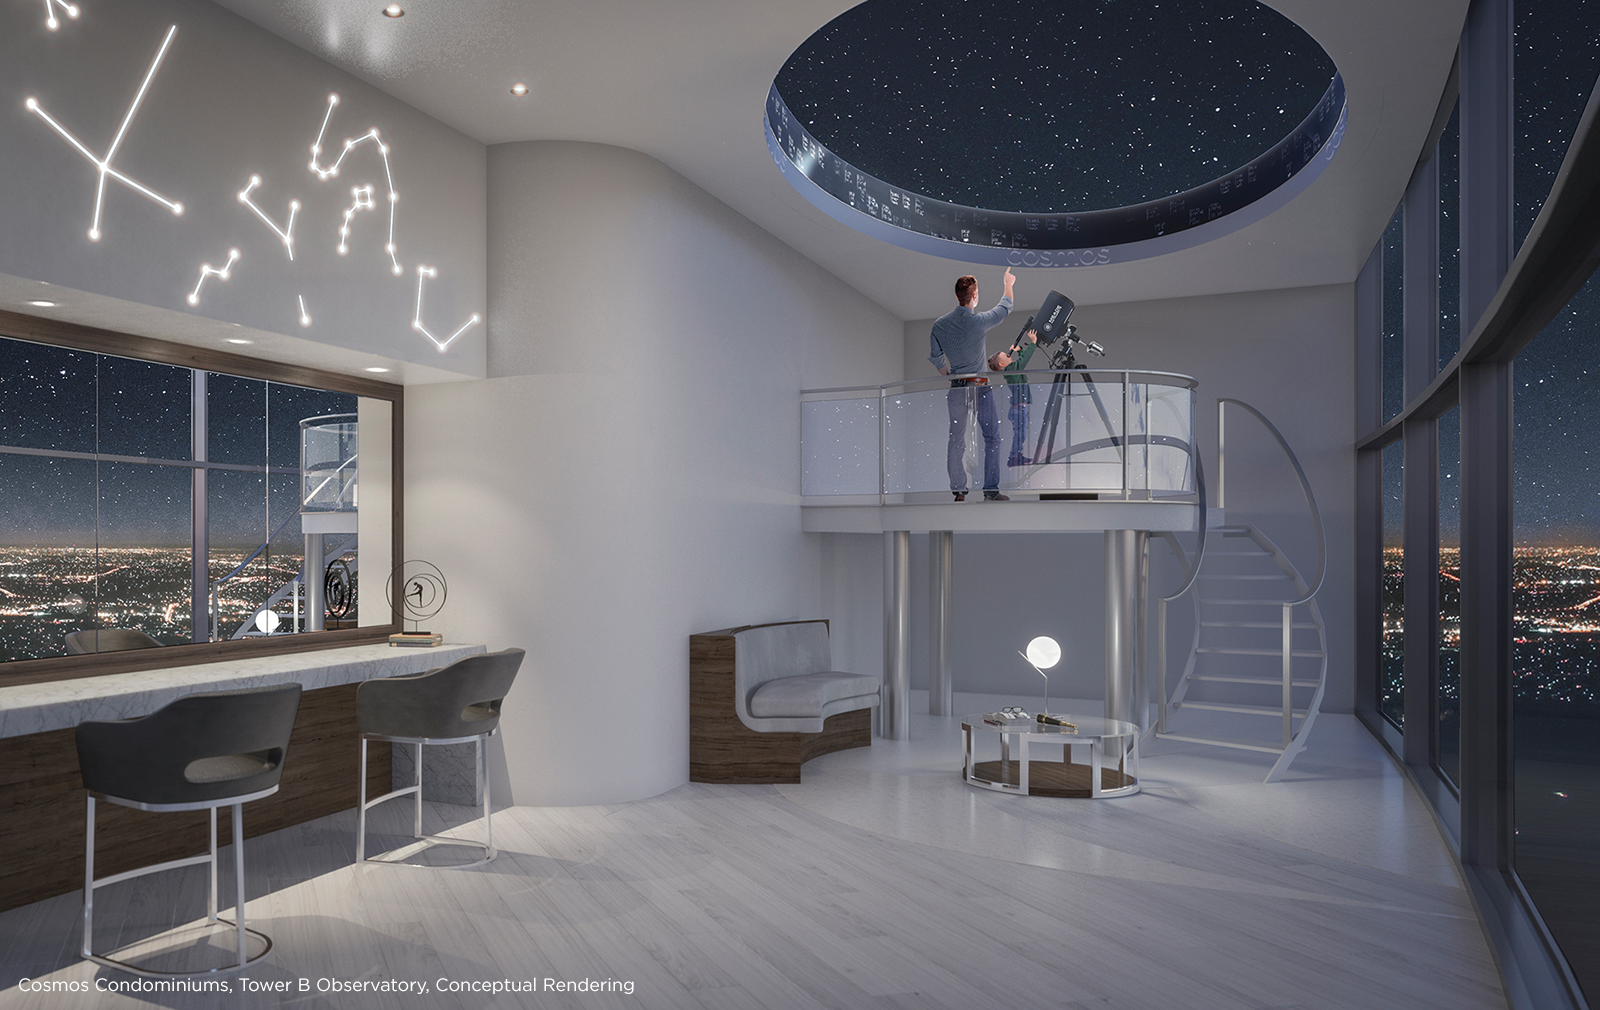 Cosmos-Condominiums-Tower-B-Observatory-Conceptual-Rendering.png